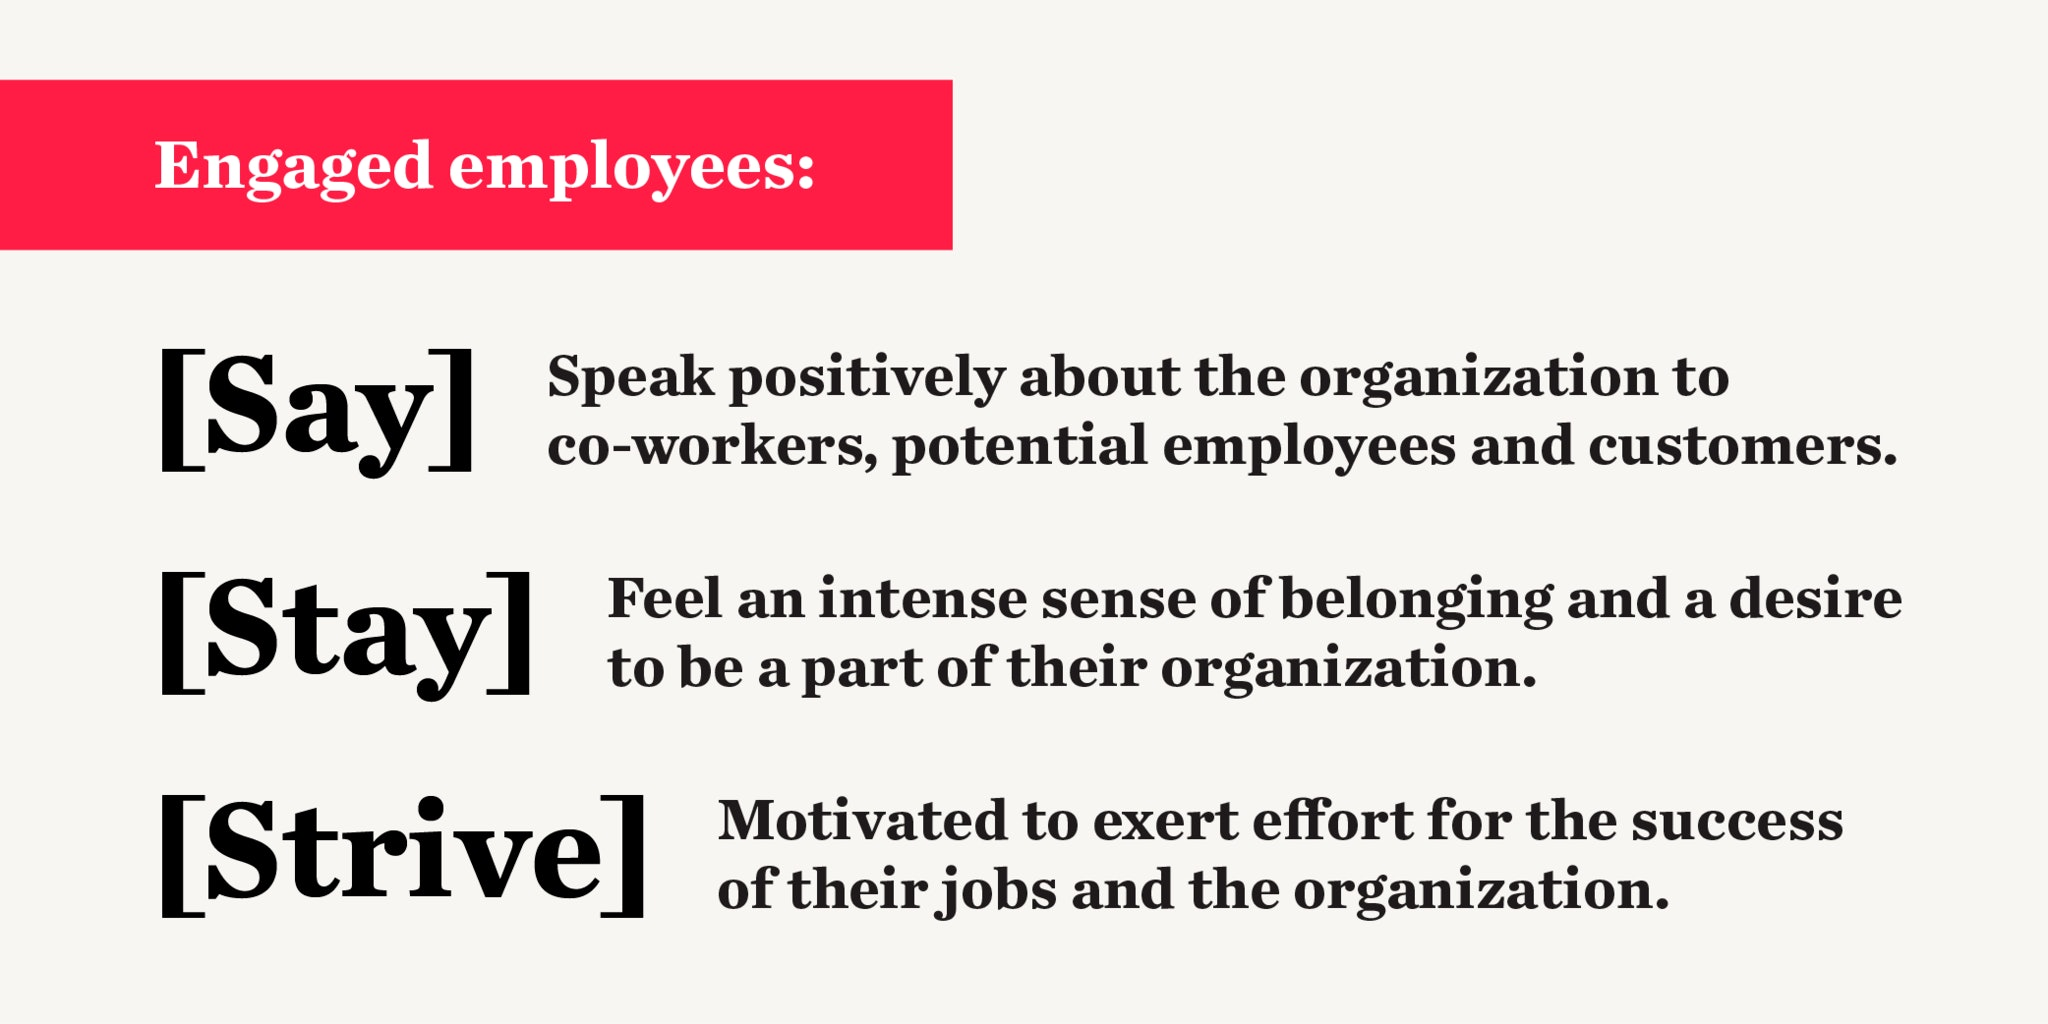 Say Stay Strive for engaged employees